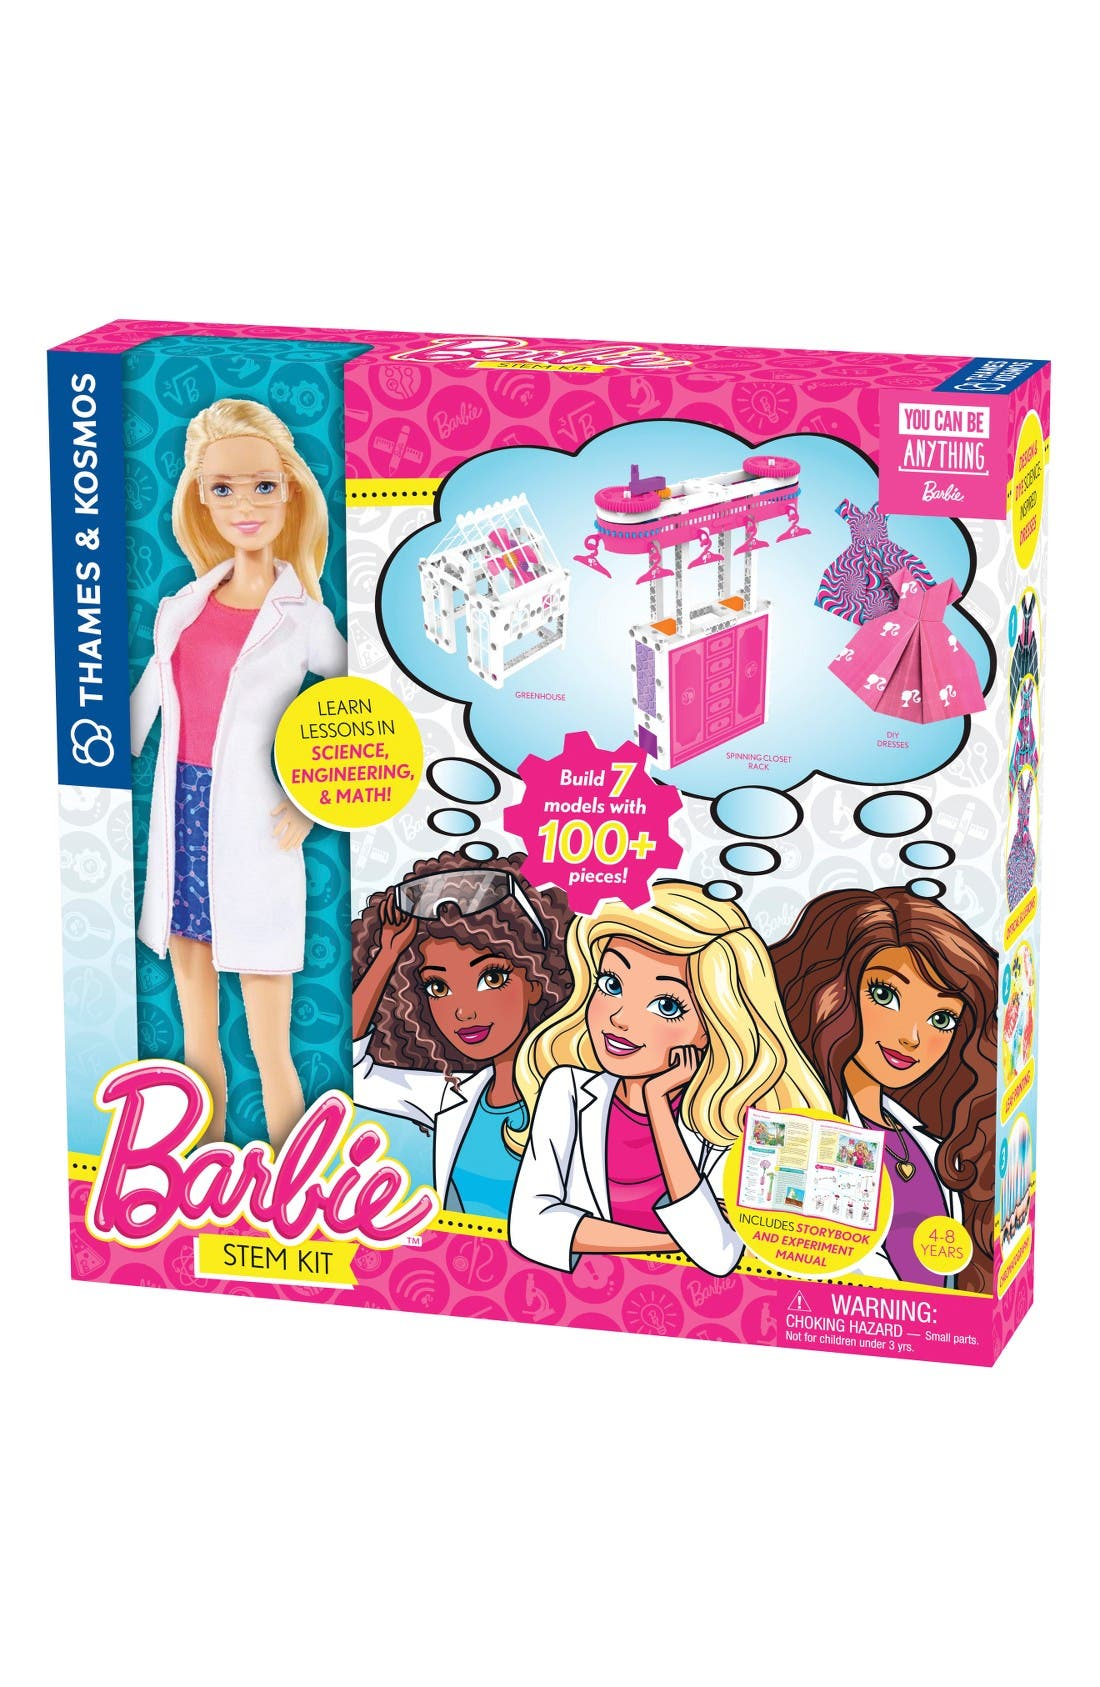 Thames & Kosmos Barbie® STEM Kit & Doll Set